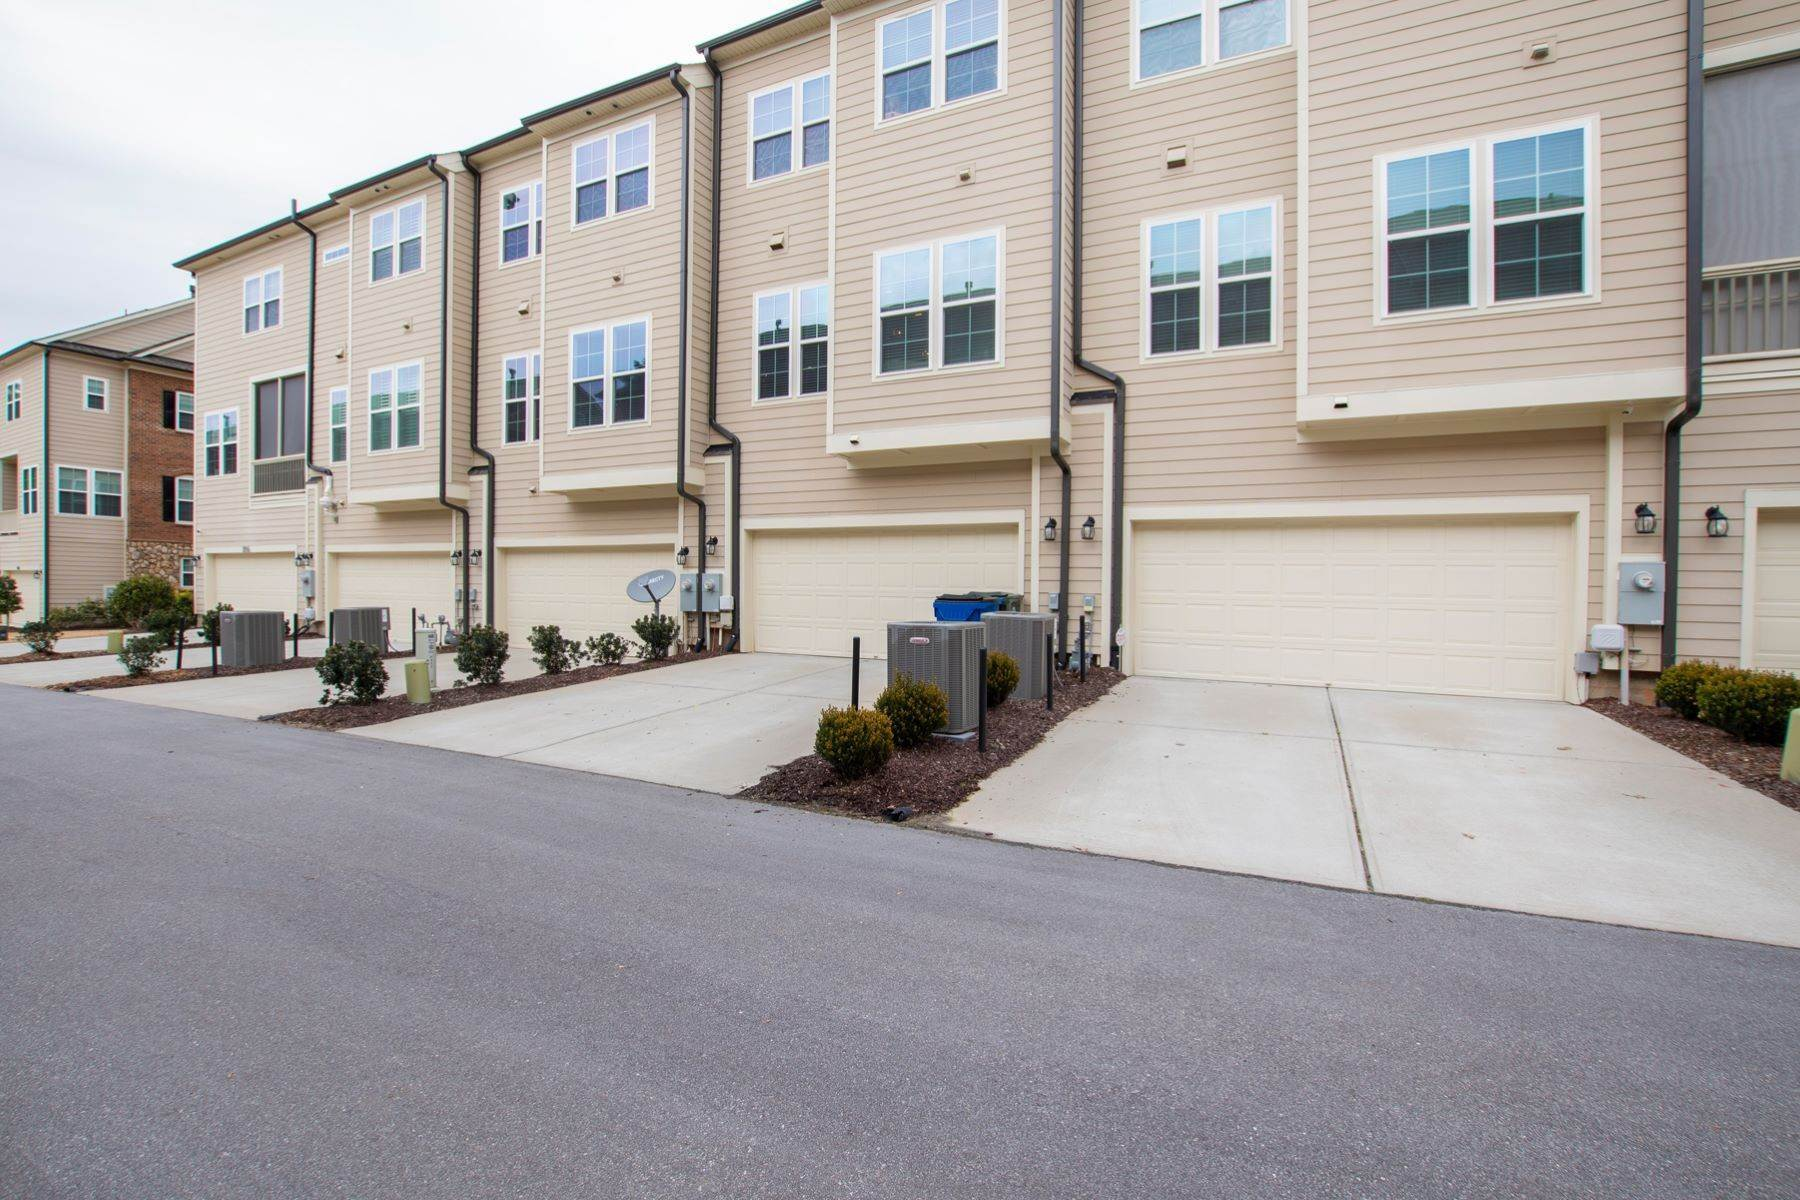 21. townhouses for Sale at 822 Bankston Woods Way Raleigh, North Carolina 27609 United States